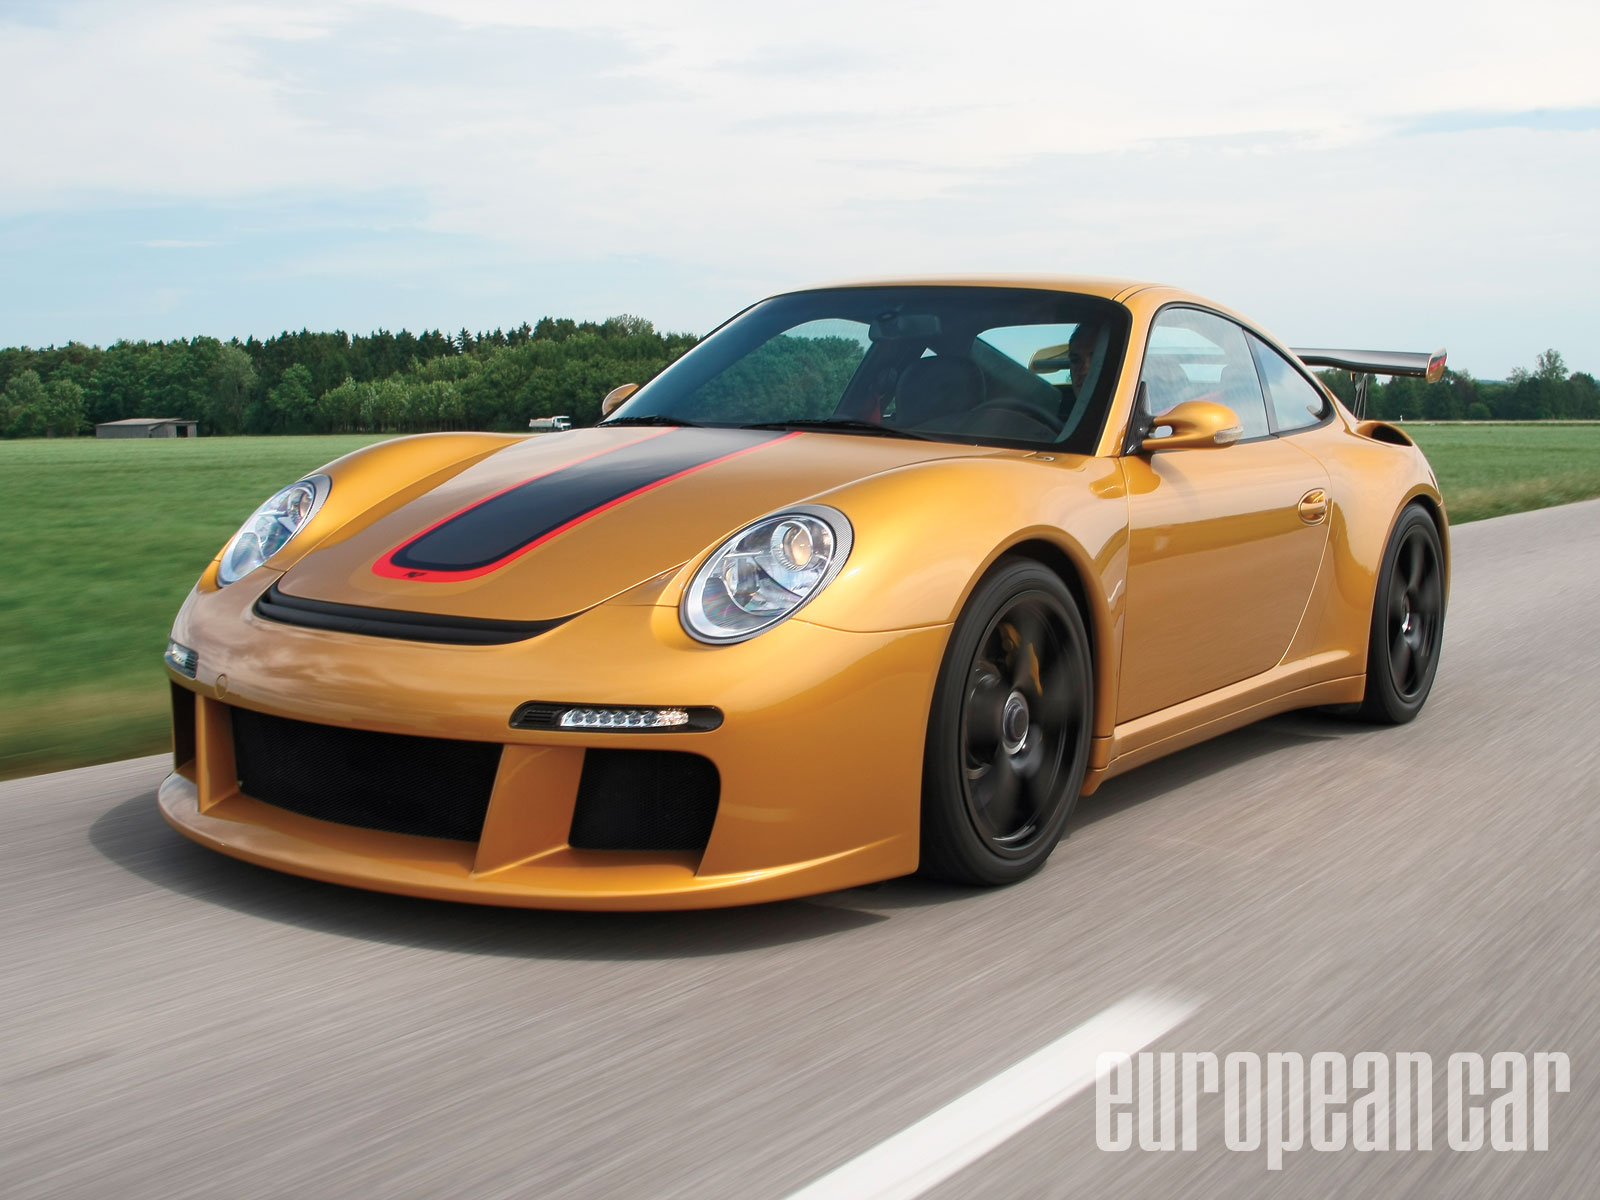 Porsche Ruf RT12R - Faster And Faster